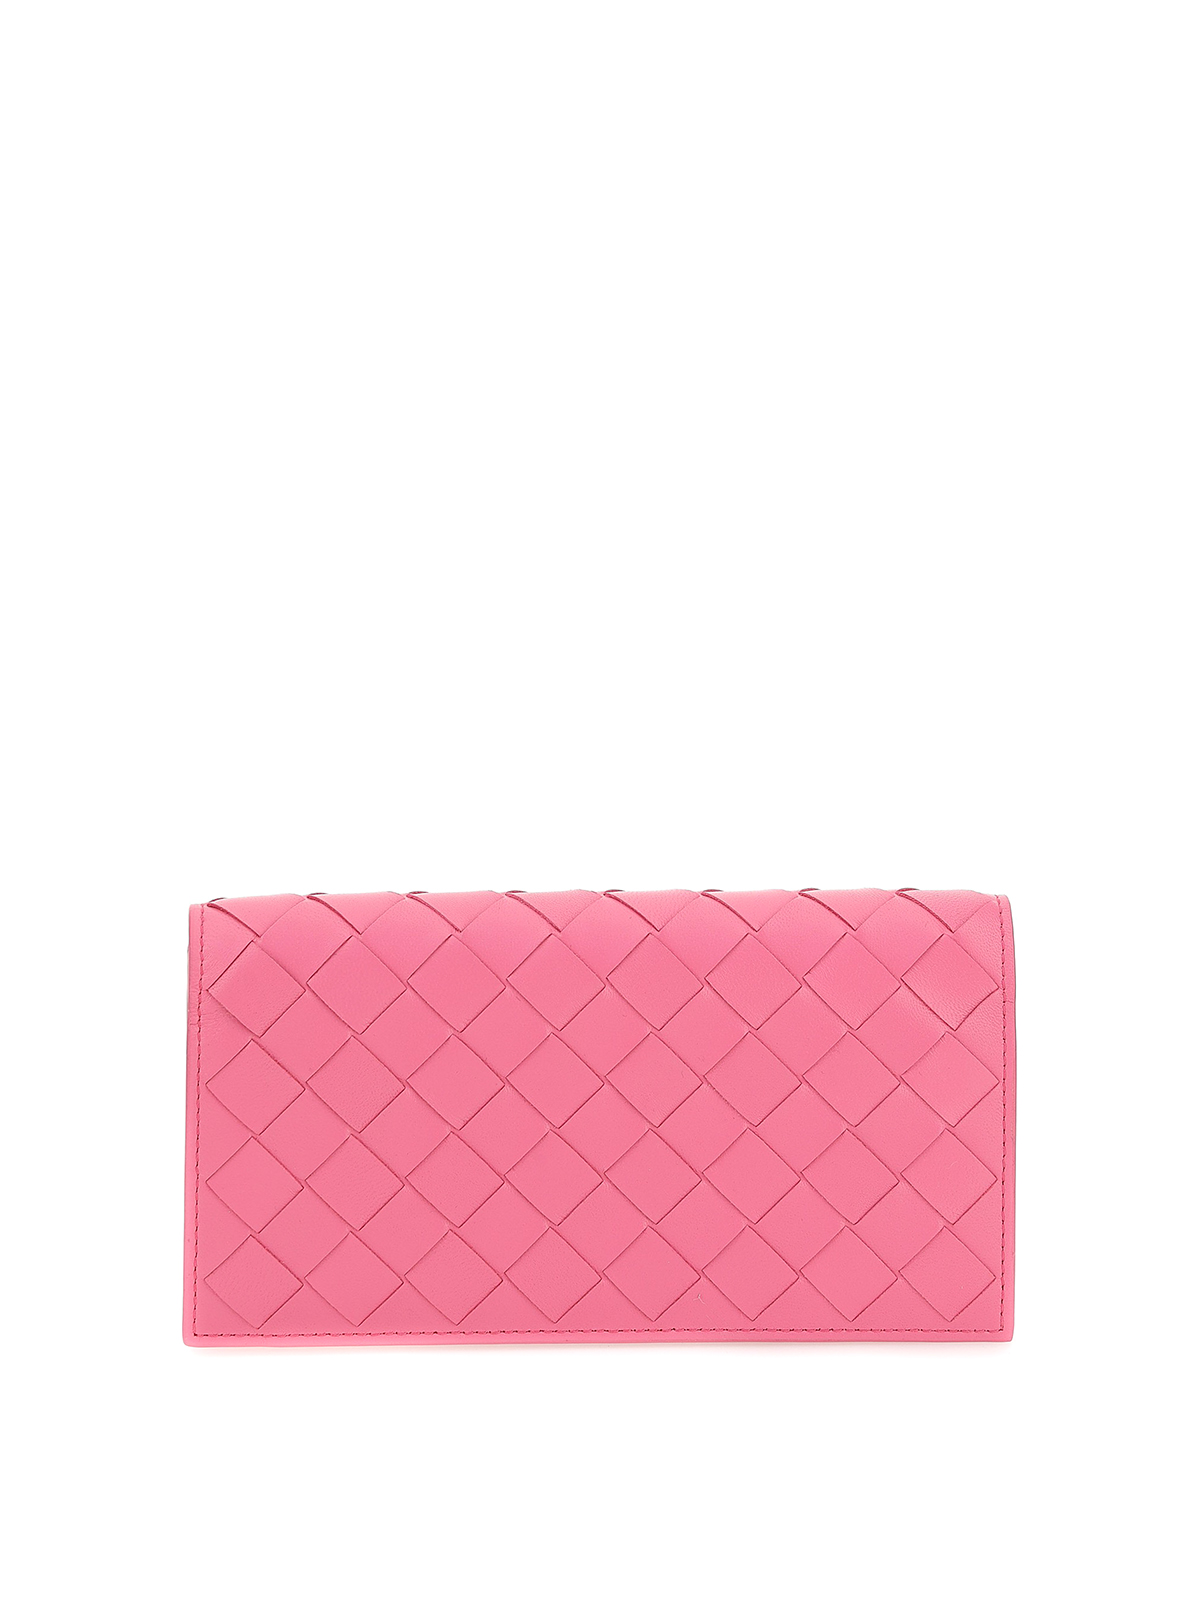 Bottega Veneta INTRECCIATO NAPA LEATHER WALLET